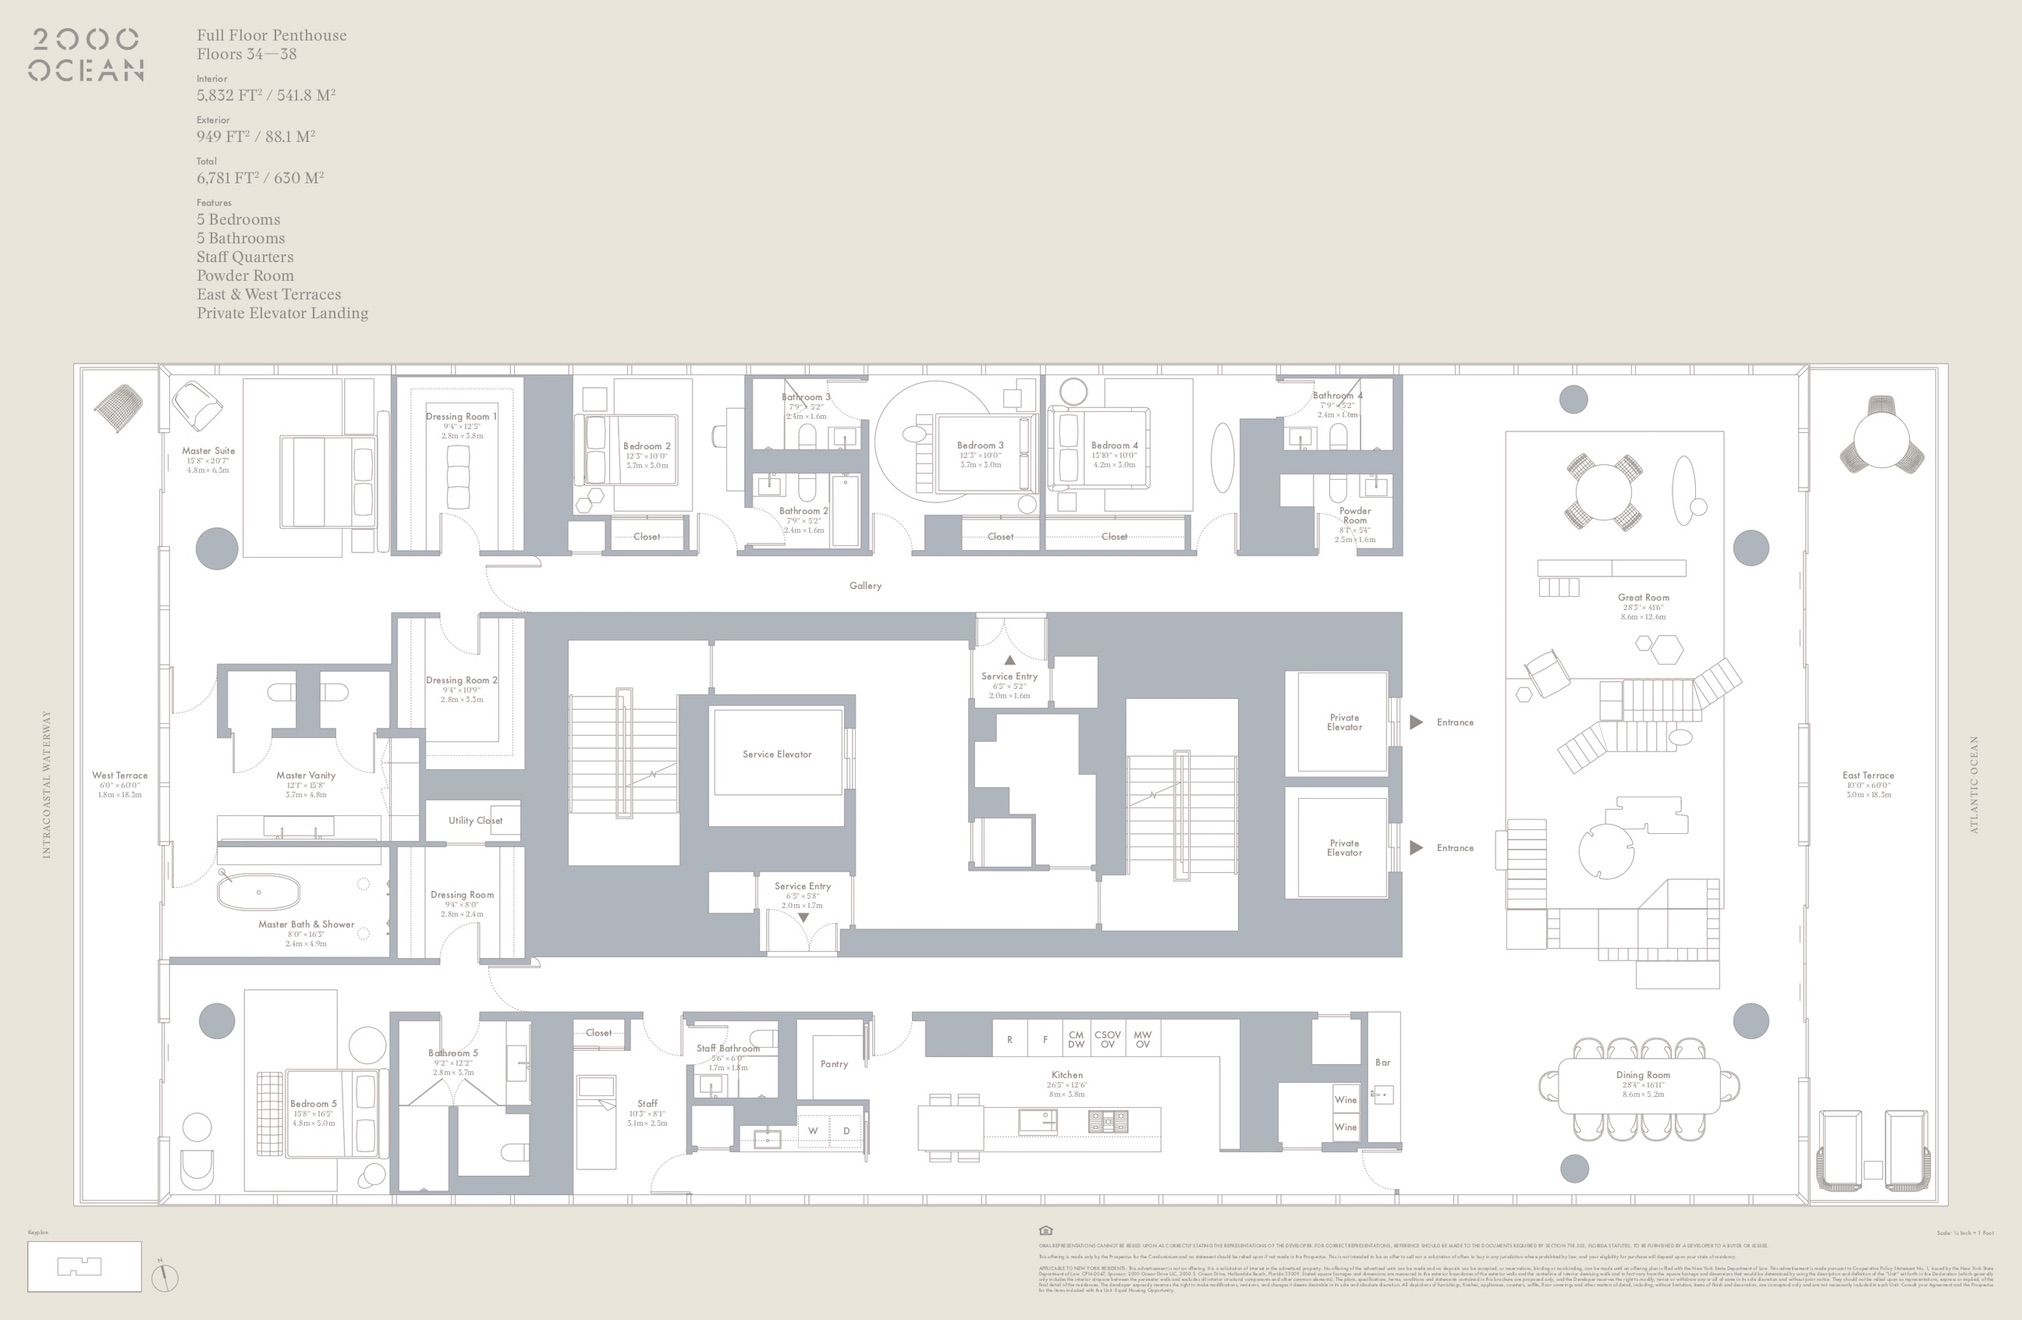 2000 Ocean suite floor plan - penthouse